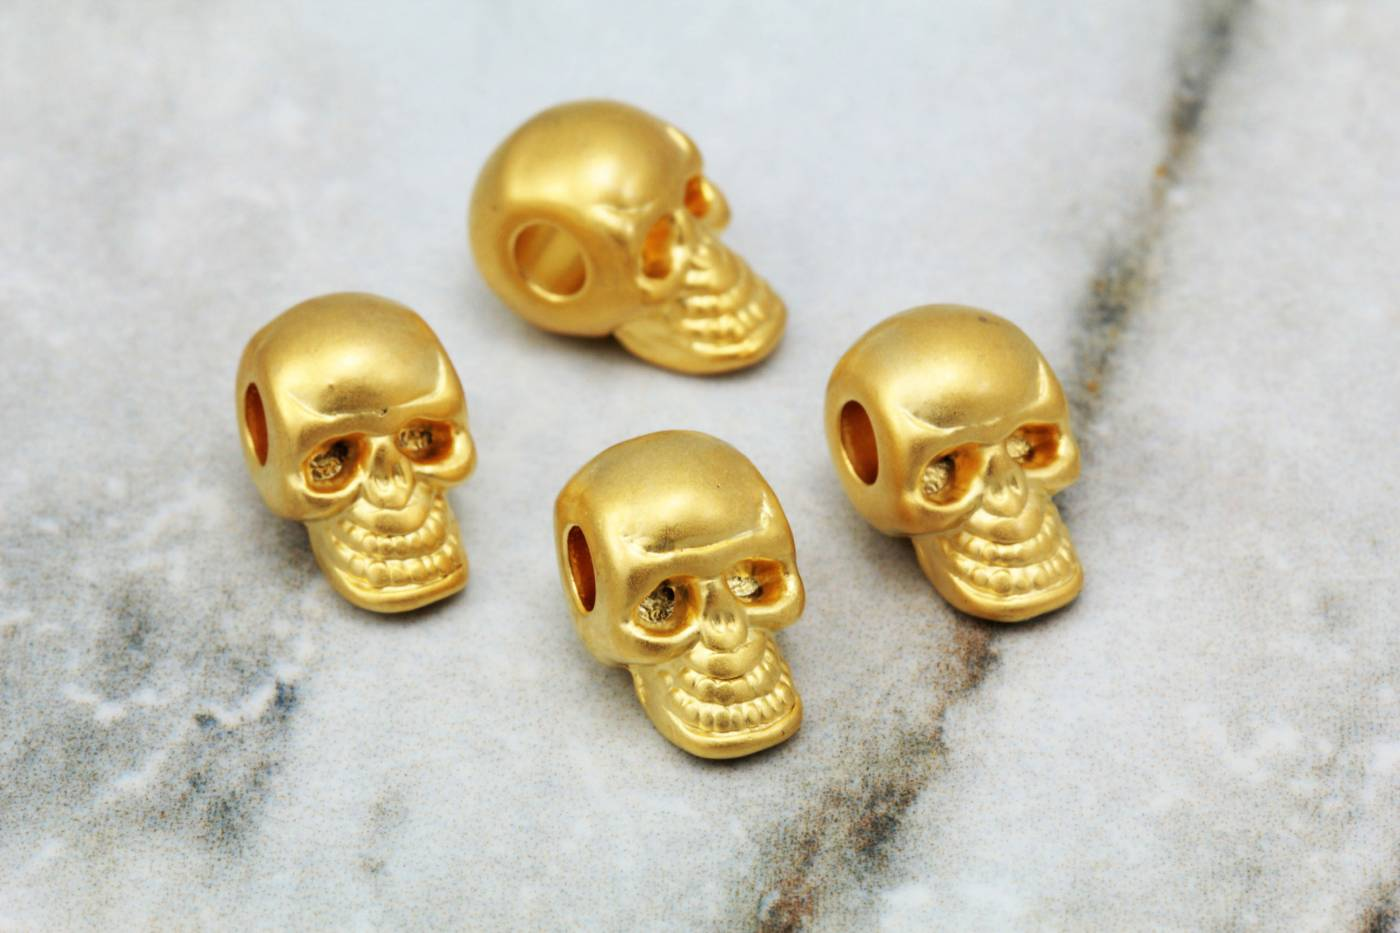 gold-metal-skull-dead-head-charms.jpg